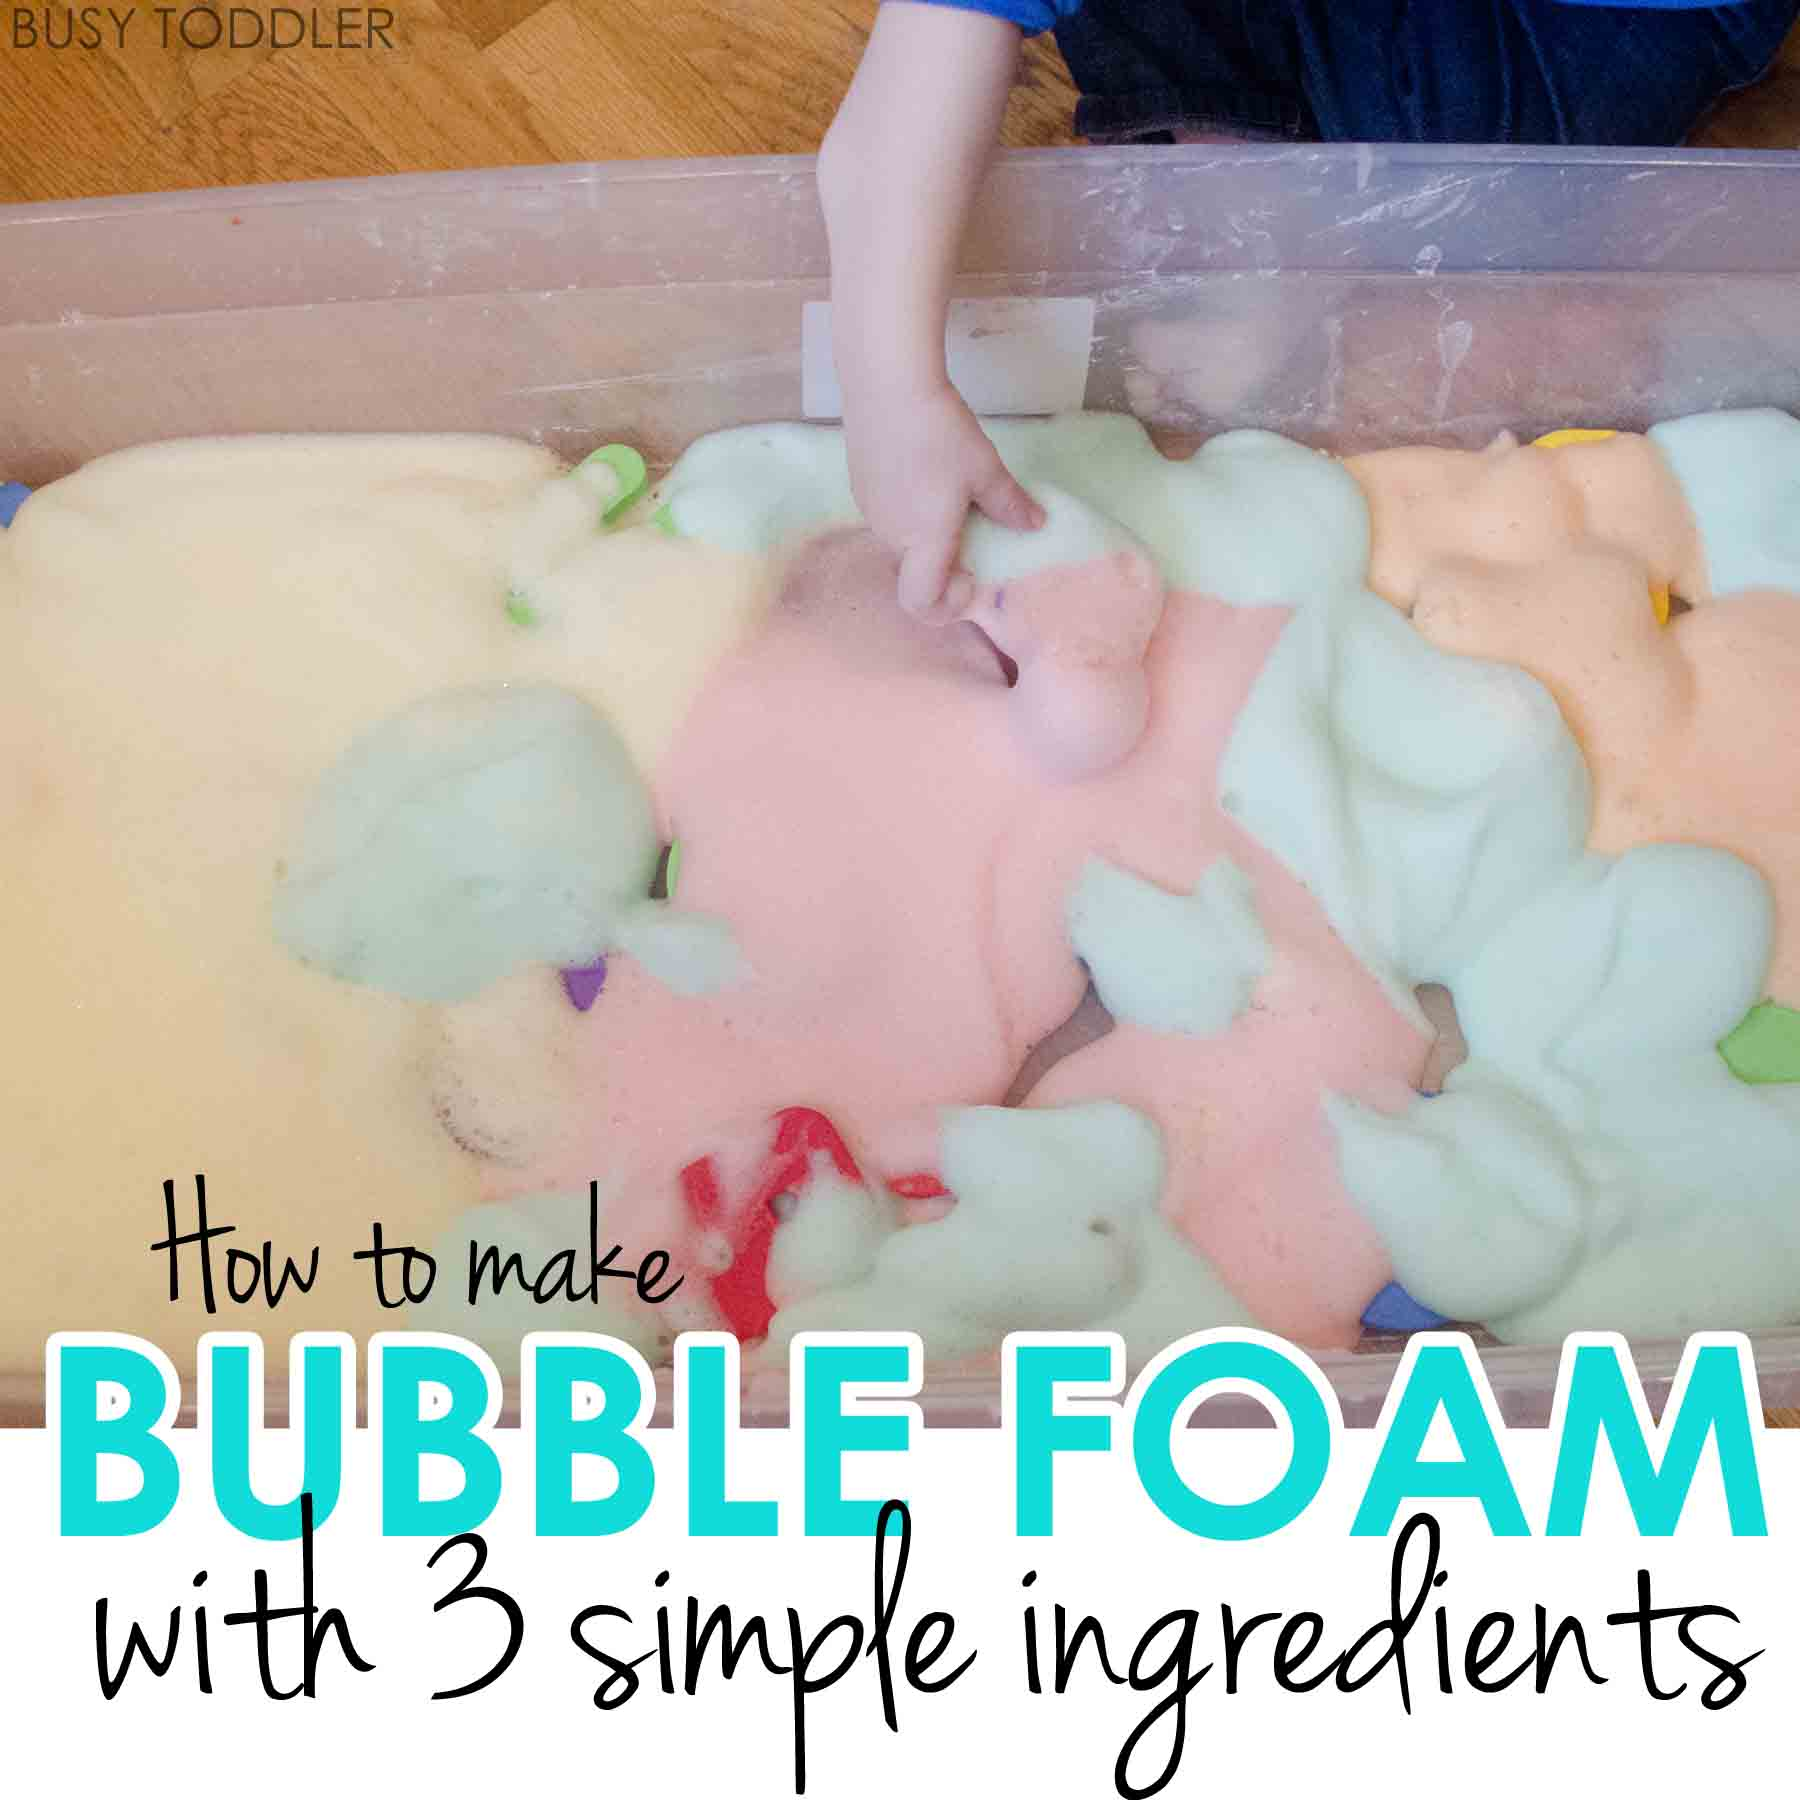 Bubble Foam Sensory Activity - Busy Toddler